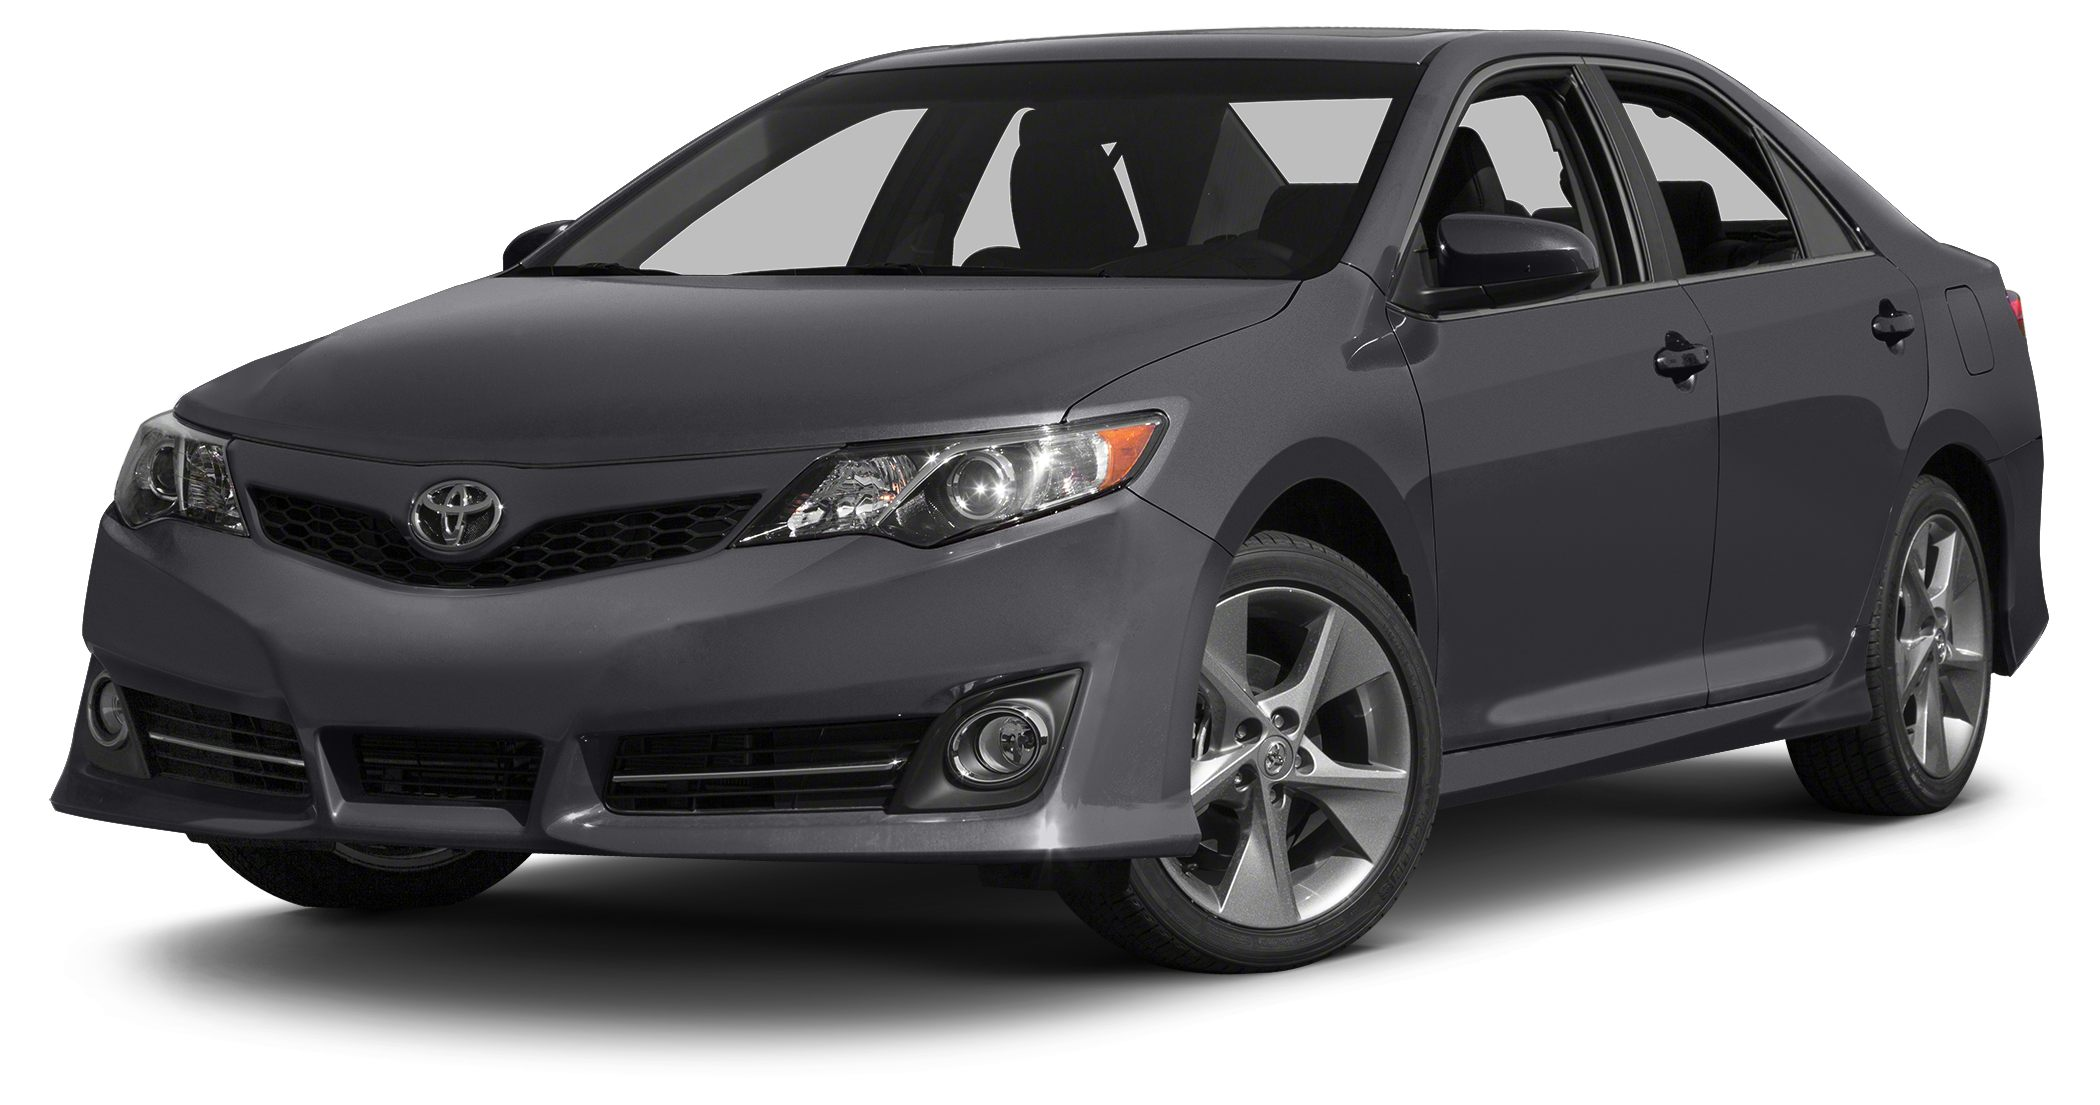 2014 Toyota Camry SE FUEL EFFICIENT 35 MPG Hwy25 MPG City SE trim MAGNETIC GRAY METALLIC exteri